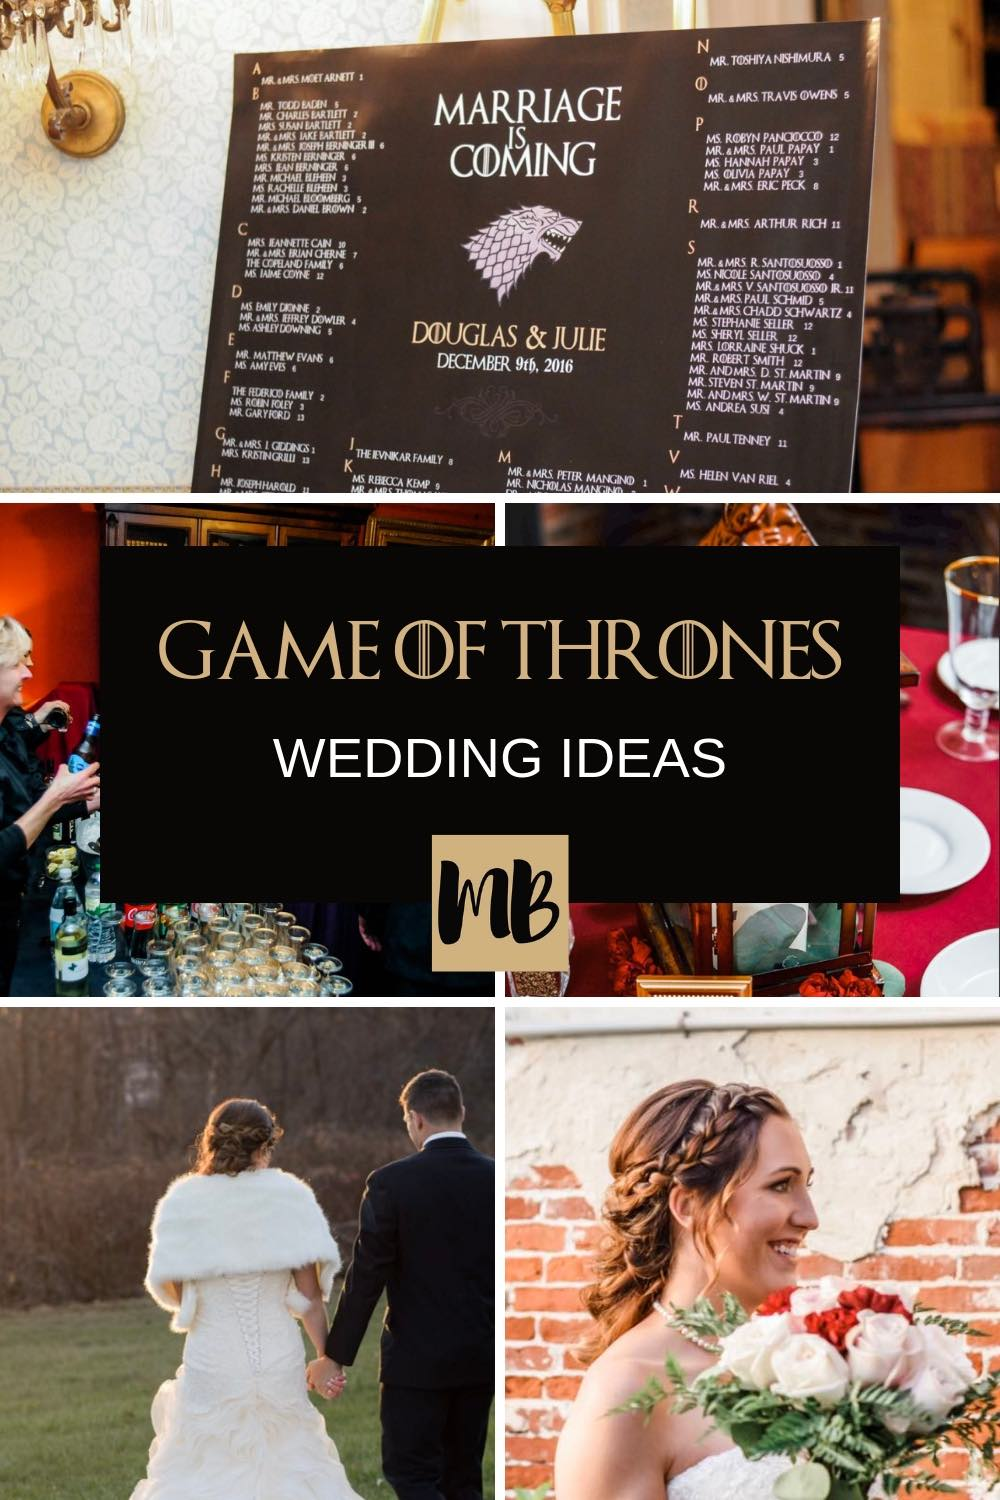 My Game of Thrones Wedding Under $15,000. Here is exactly how I did Game of Thrones Hair, Game of Thrones Music, Picked out a Game of Thrones Venue and Did Game of Thrones Inspired Wedding Flowers